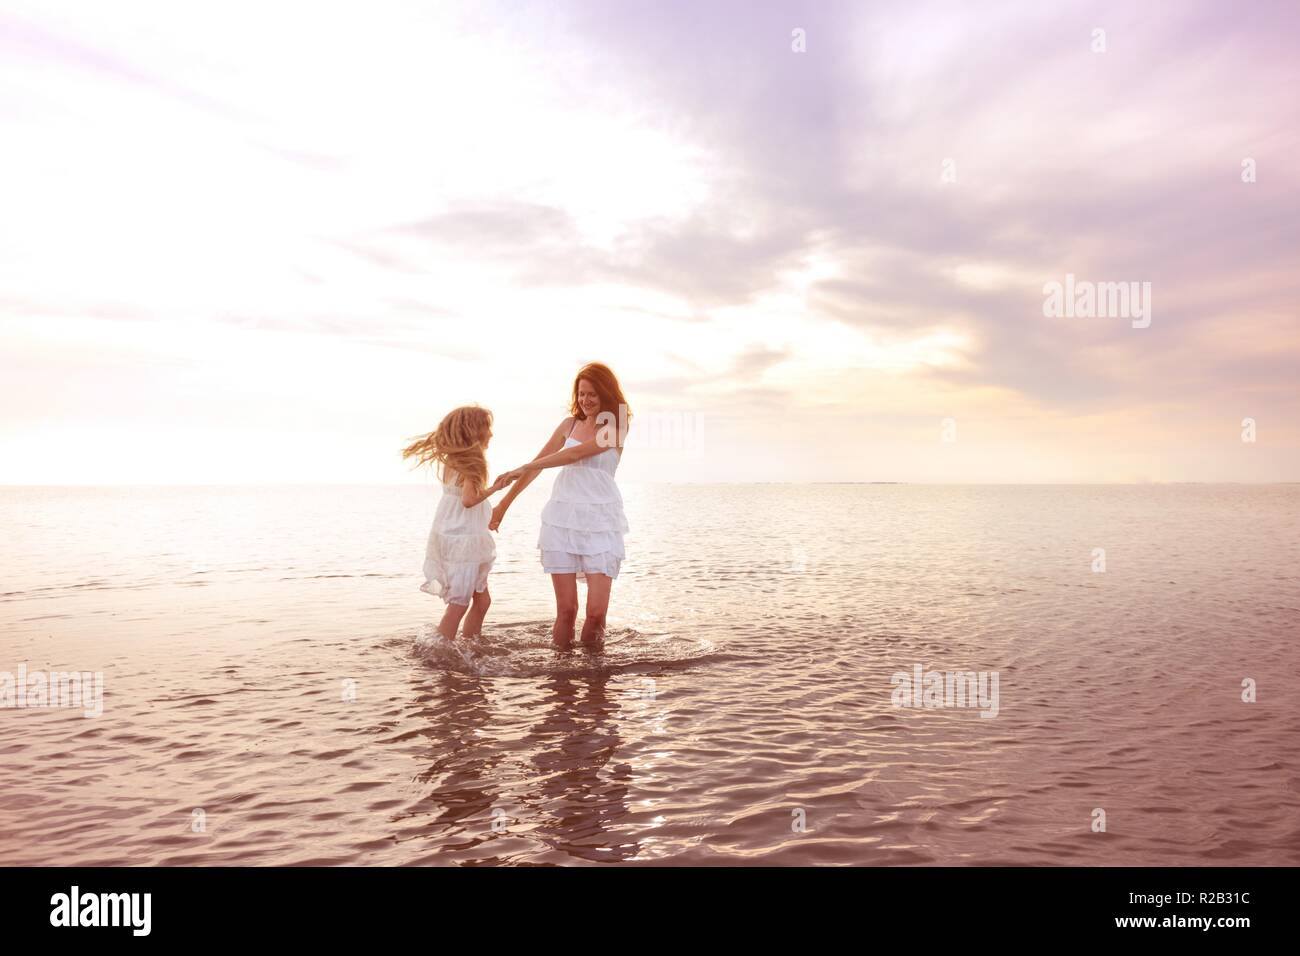 happy fun weekend by the sea - Mom and daughter in white dresses whirling by the sea at sunset. Ukrainian landscape at the Sea of Azov, Ukraine - Stock Image